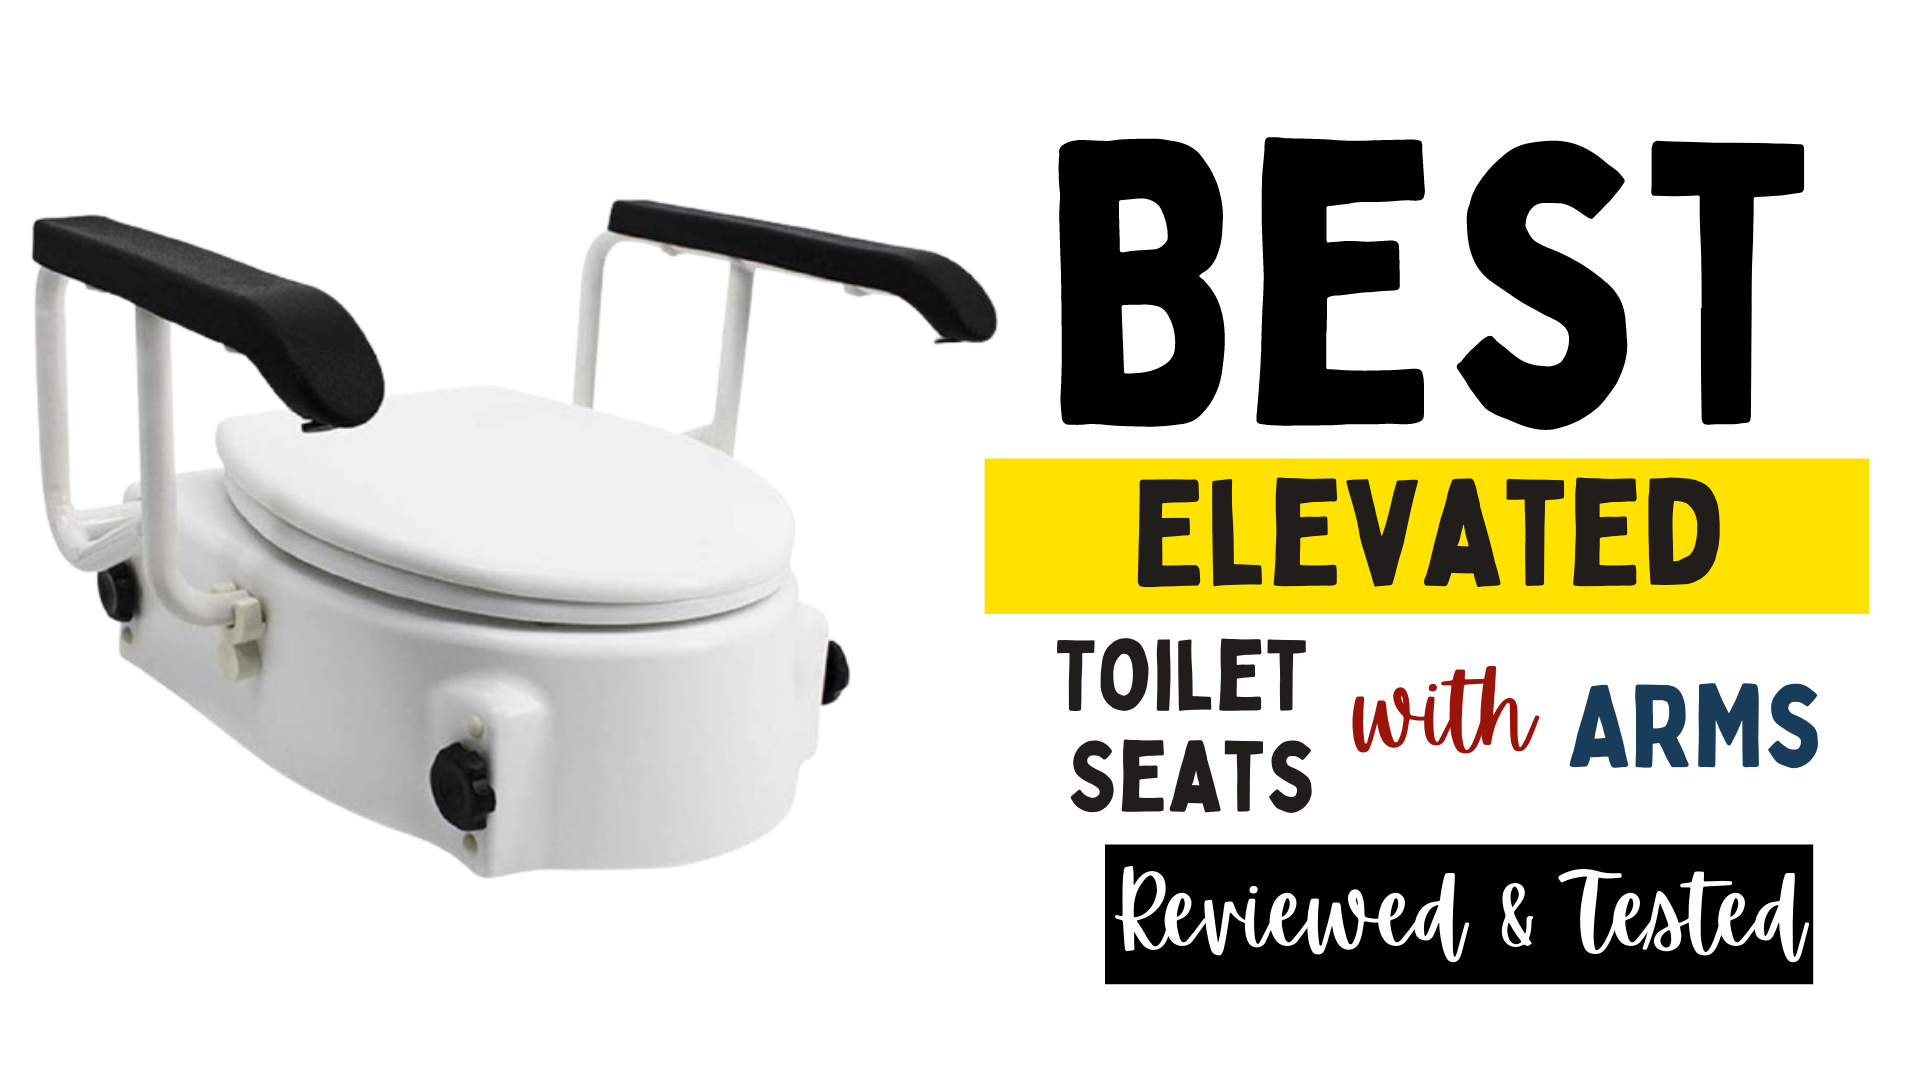 Best Elevated Toilet Seats with Arms